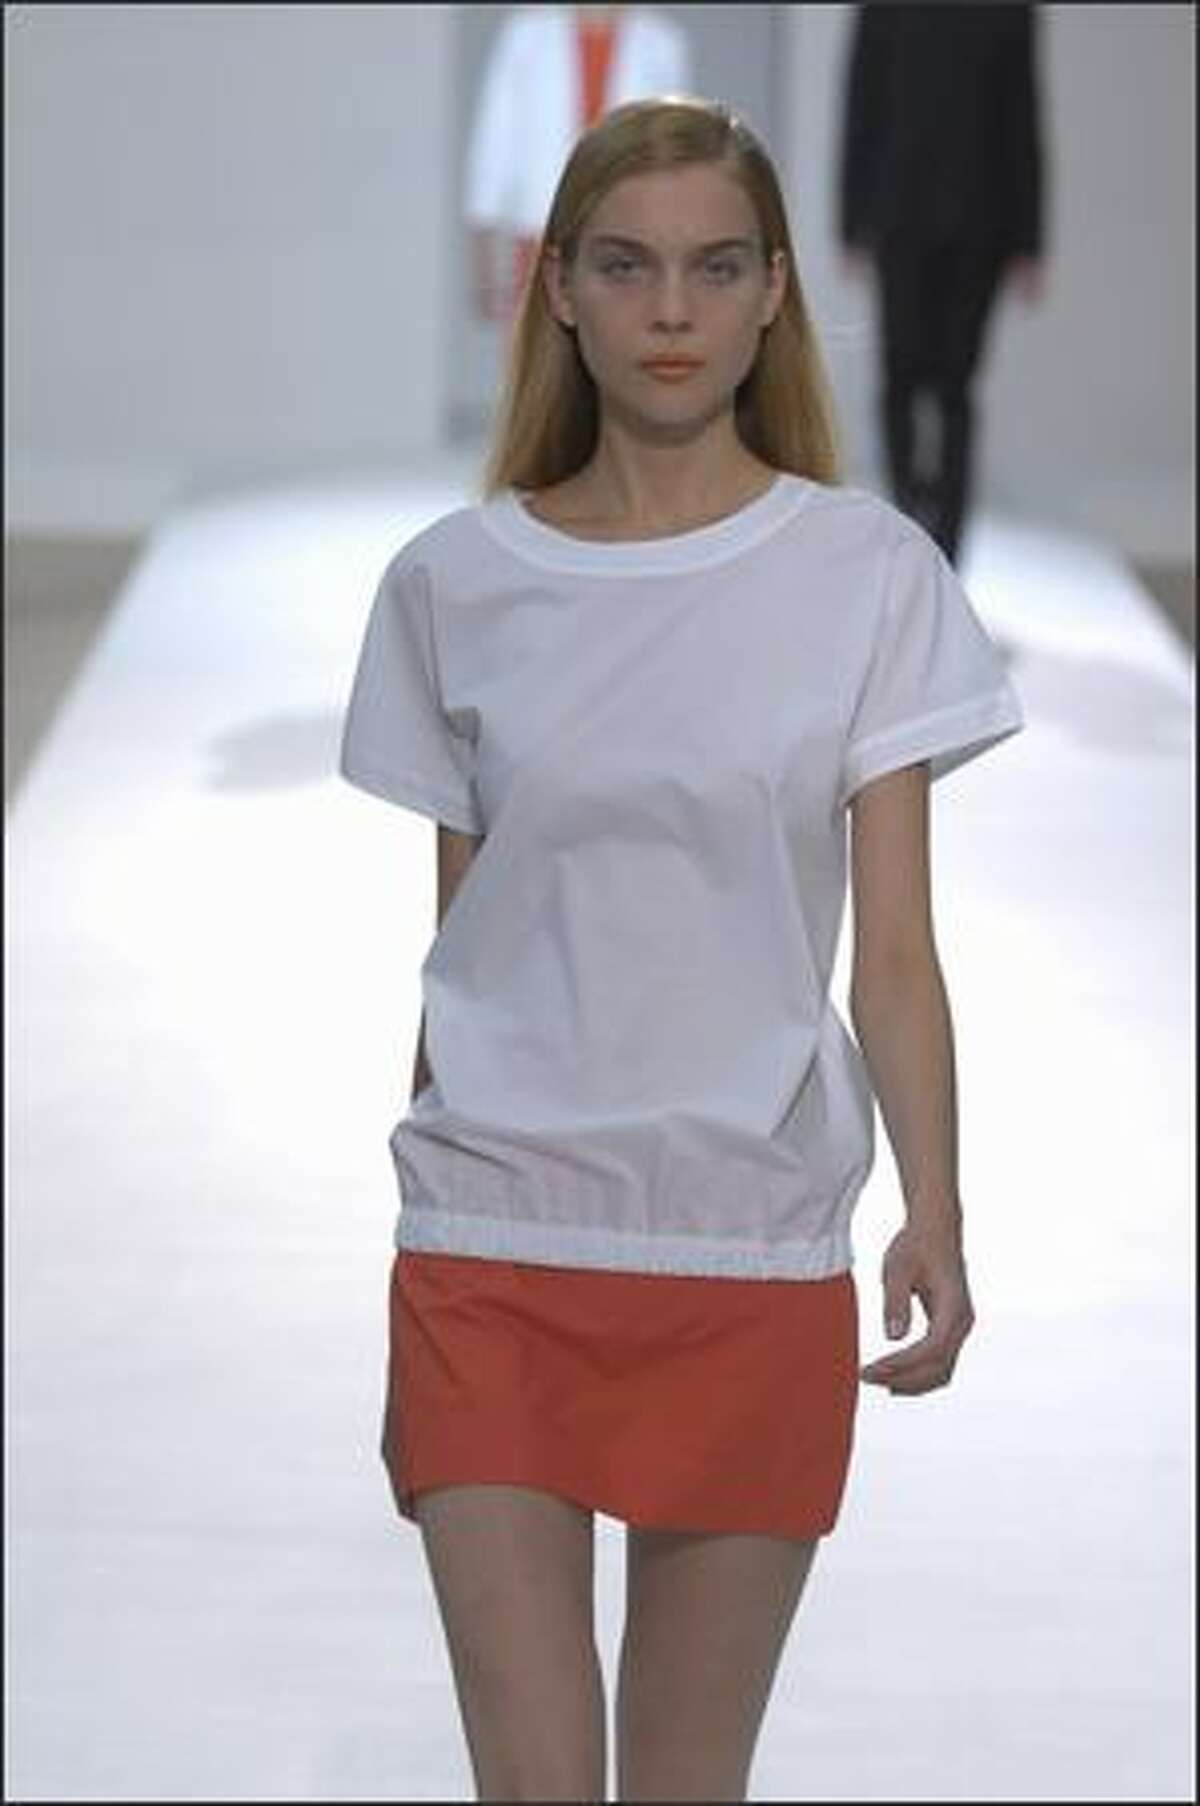 A model displays new clothing from H&M's Spring/Summer 2008 collection. (Chris Moore/H&M)